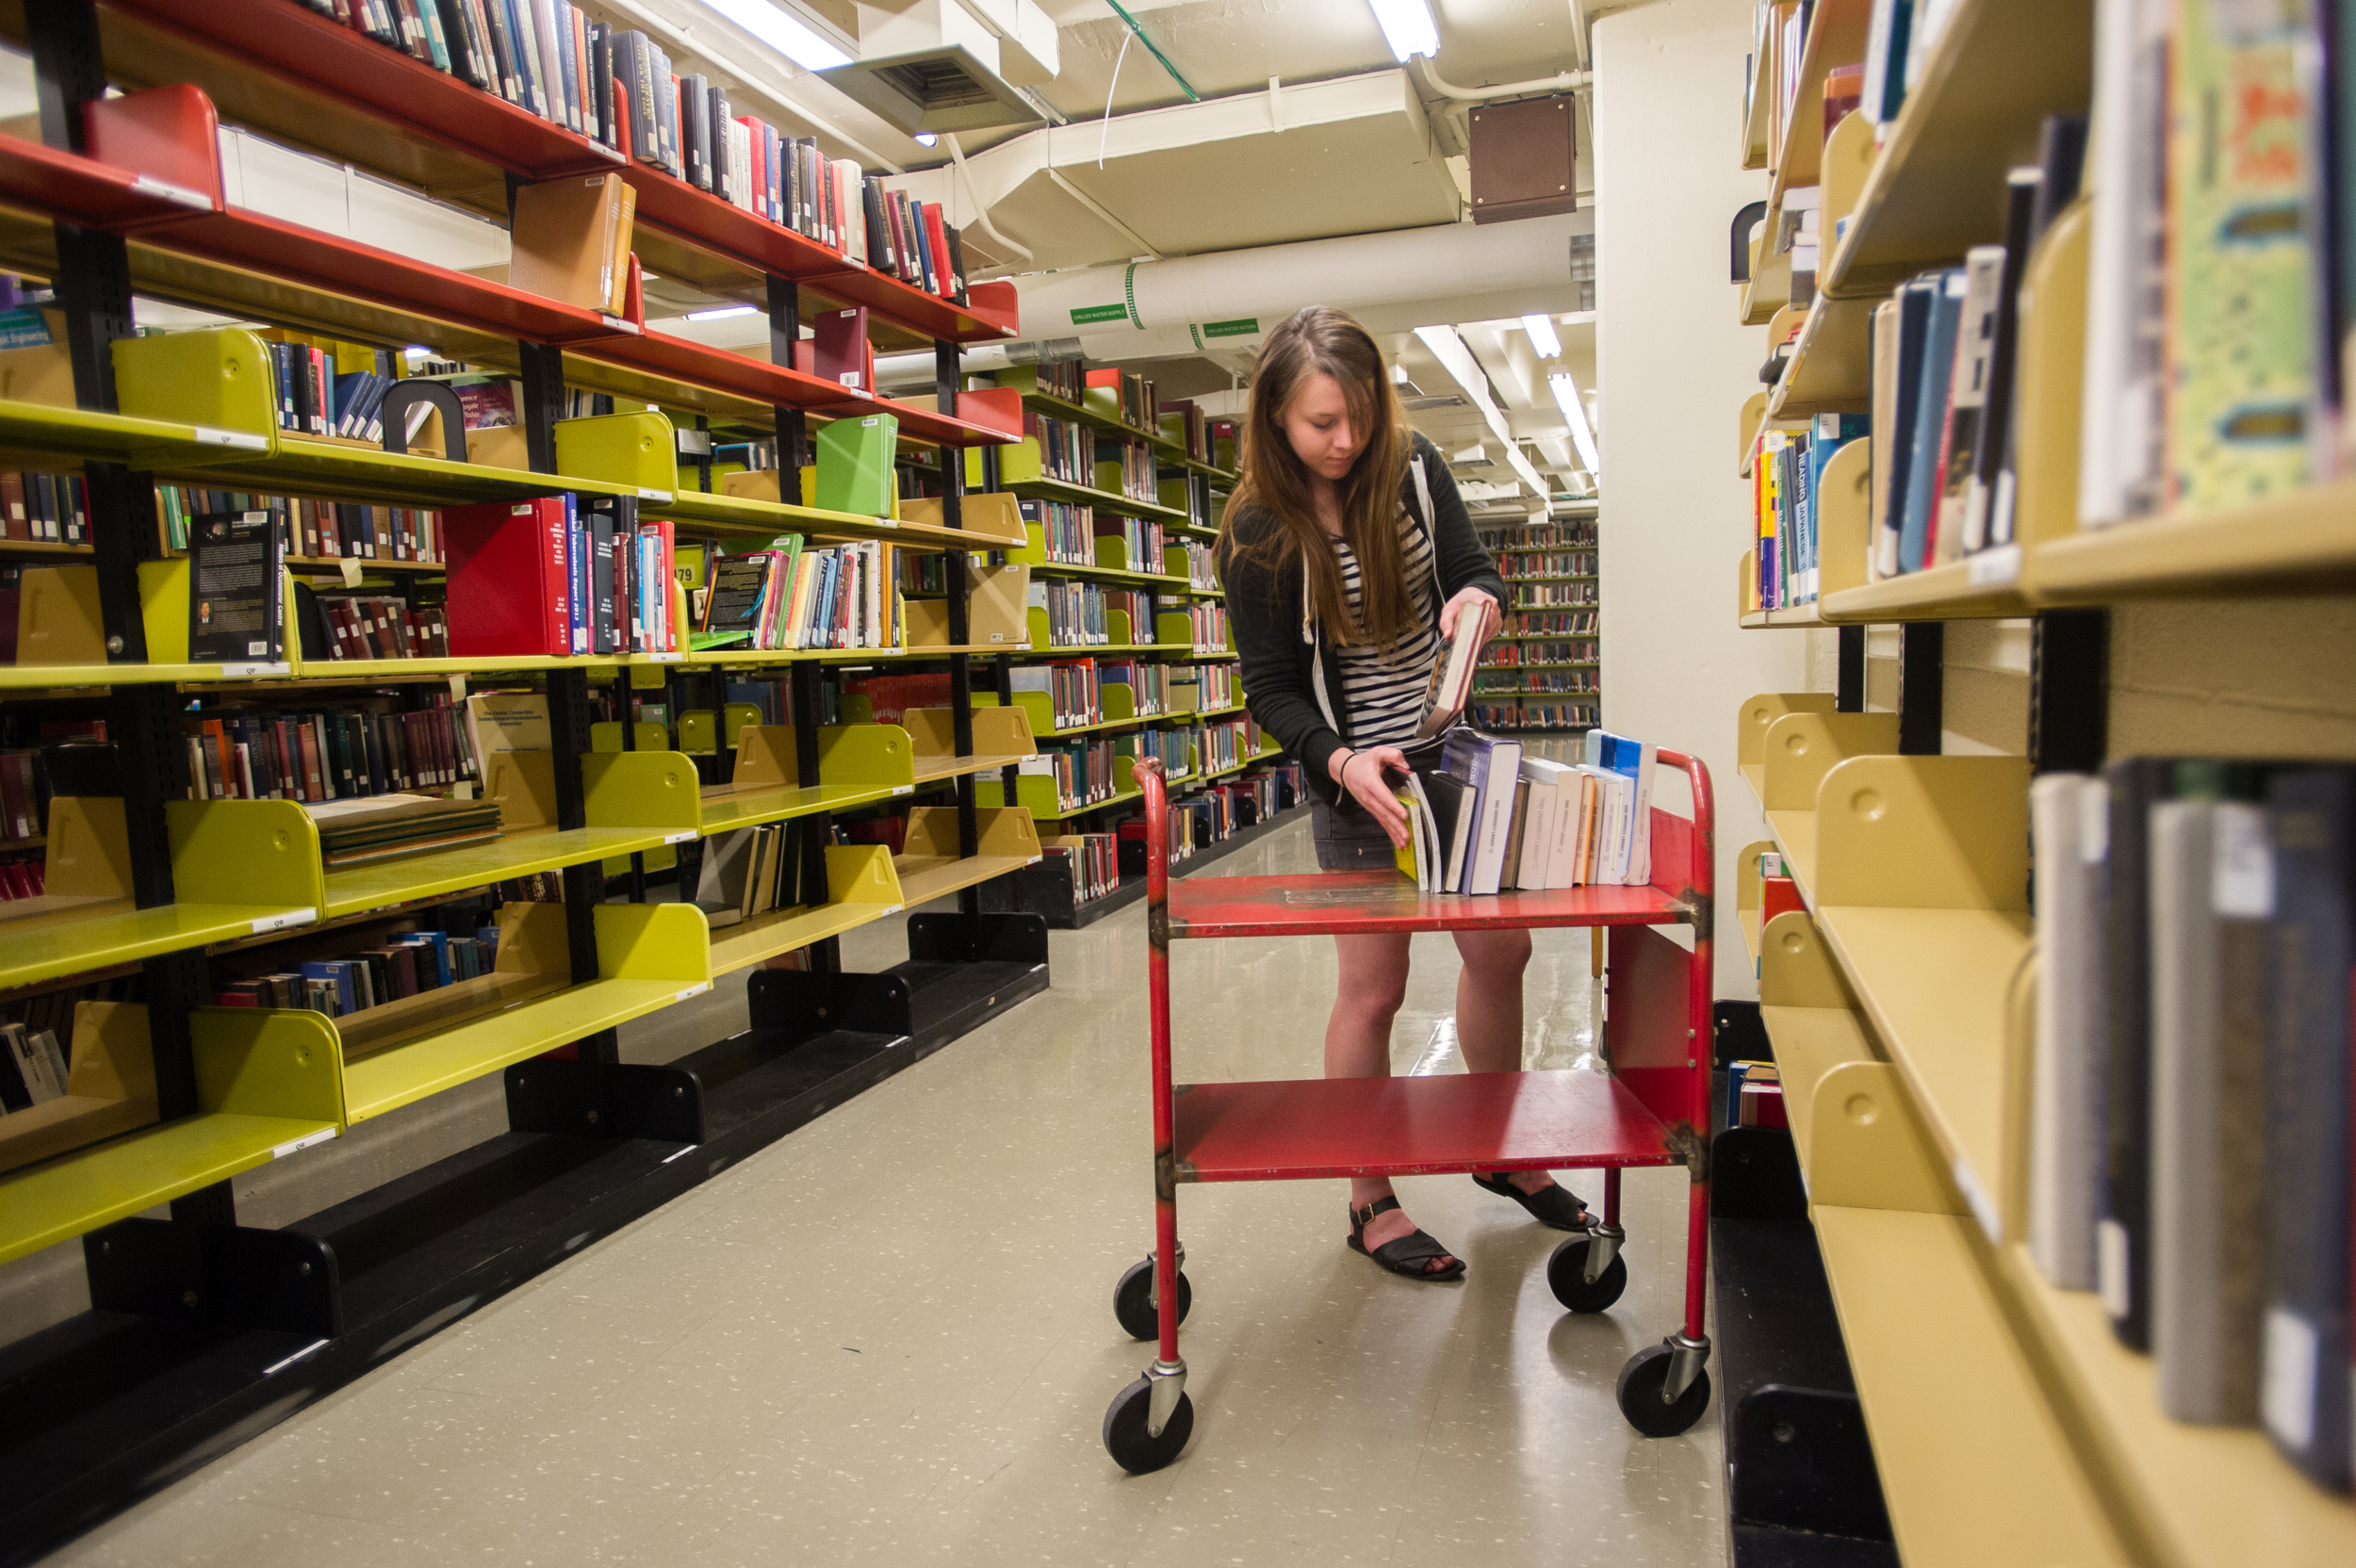 """Chelsea Langlois, a fifth year Ohio University student studying actuarial science, organizes books in """"The Stacks"""" of Alden Library in Athens, Ohio, on April 6, 2015."""